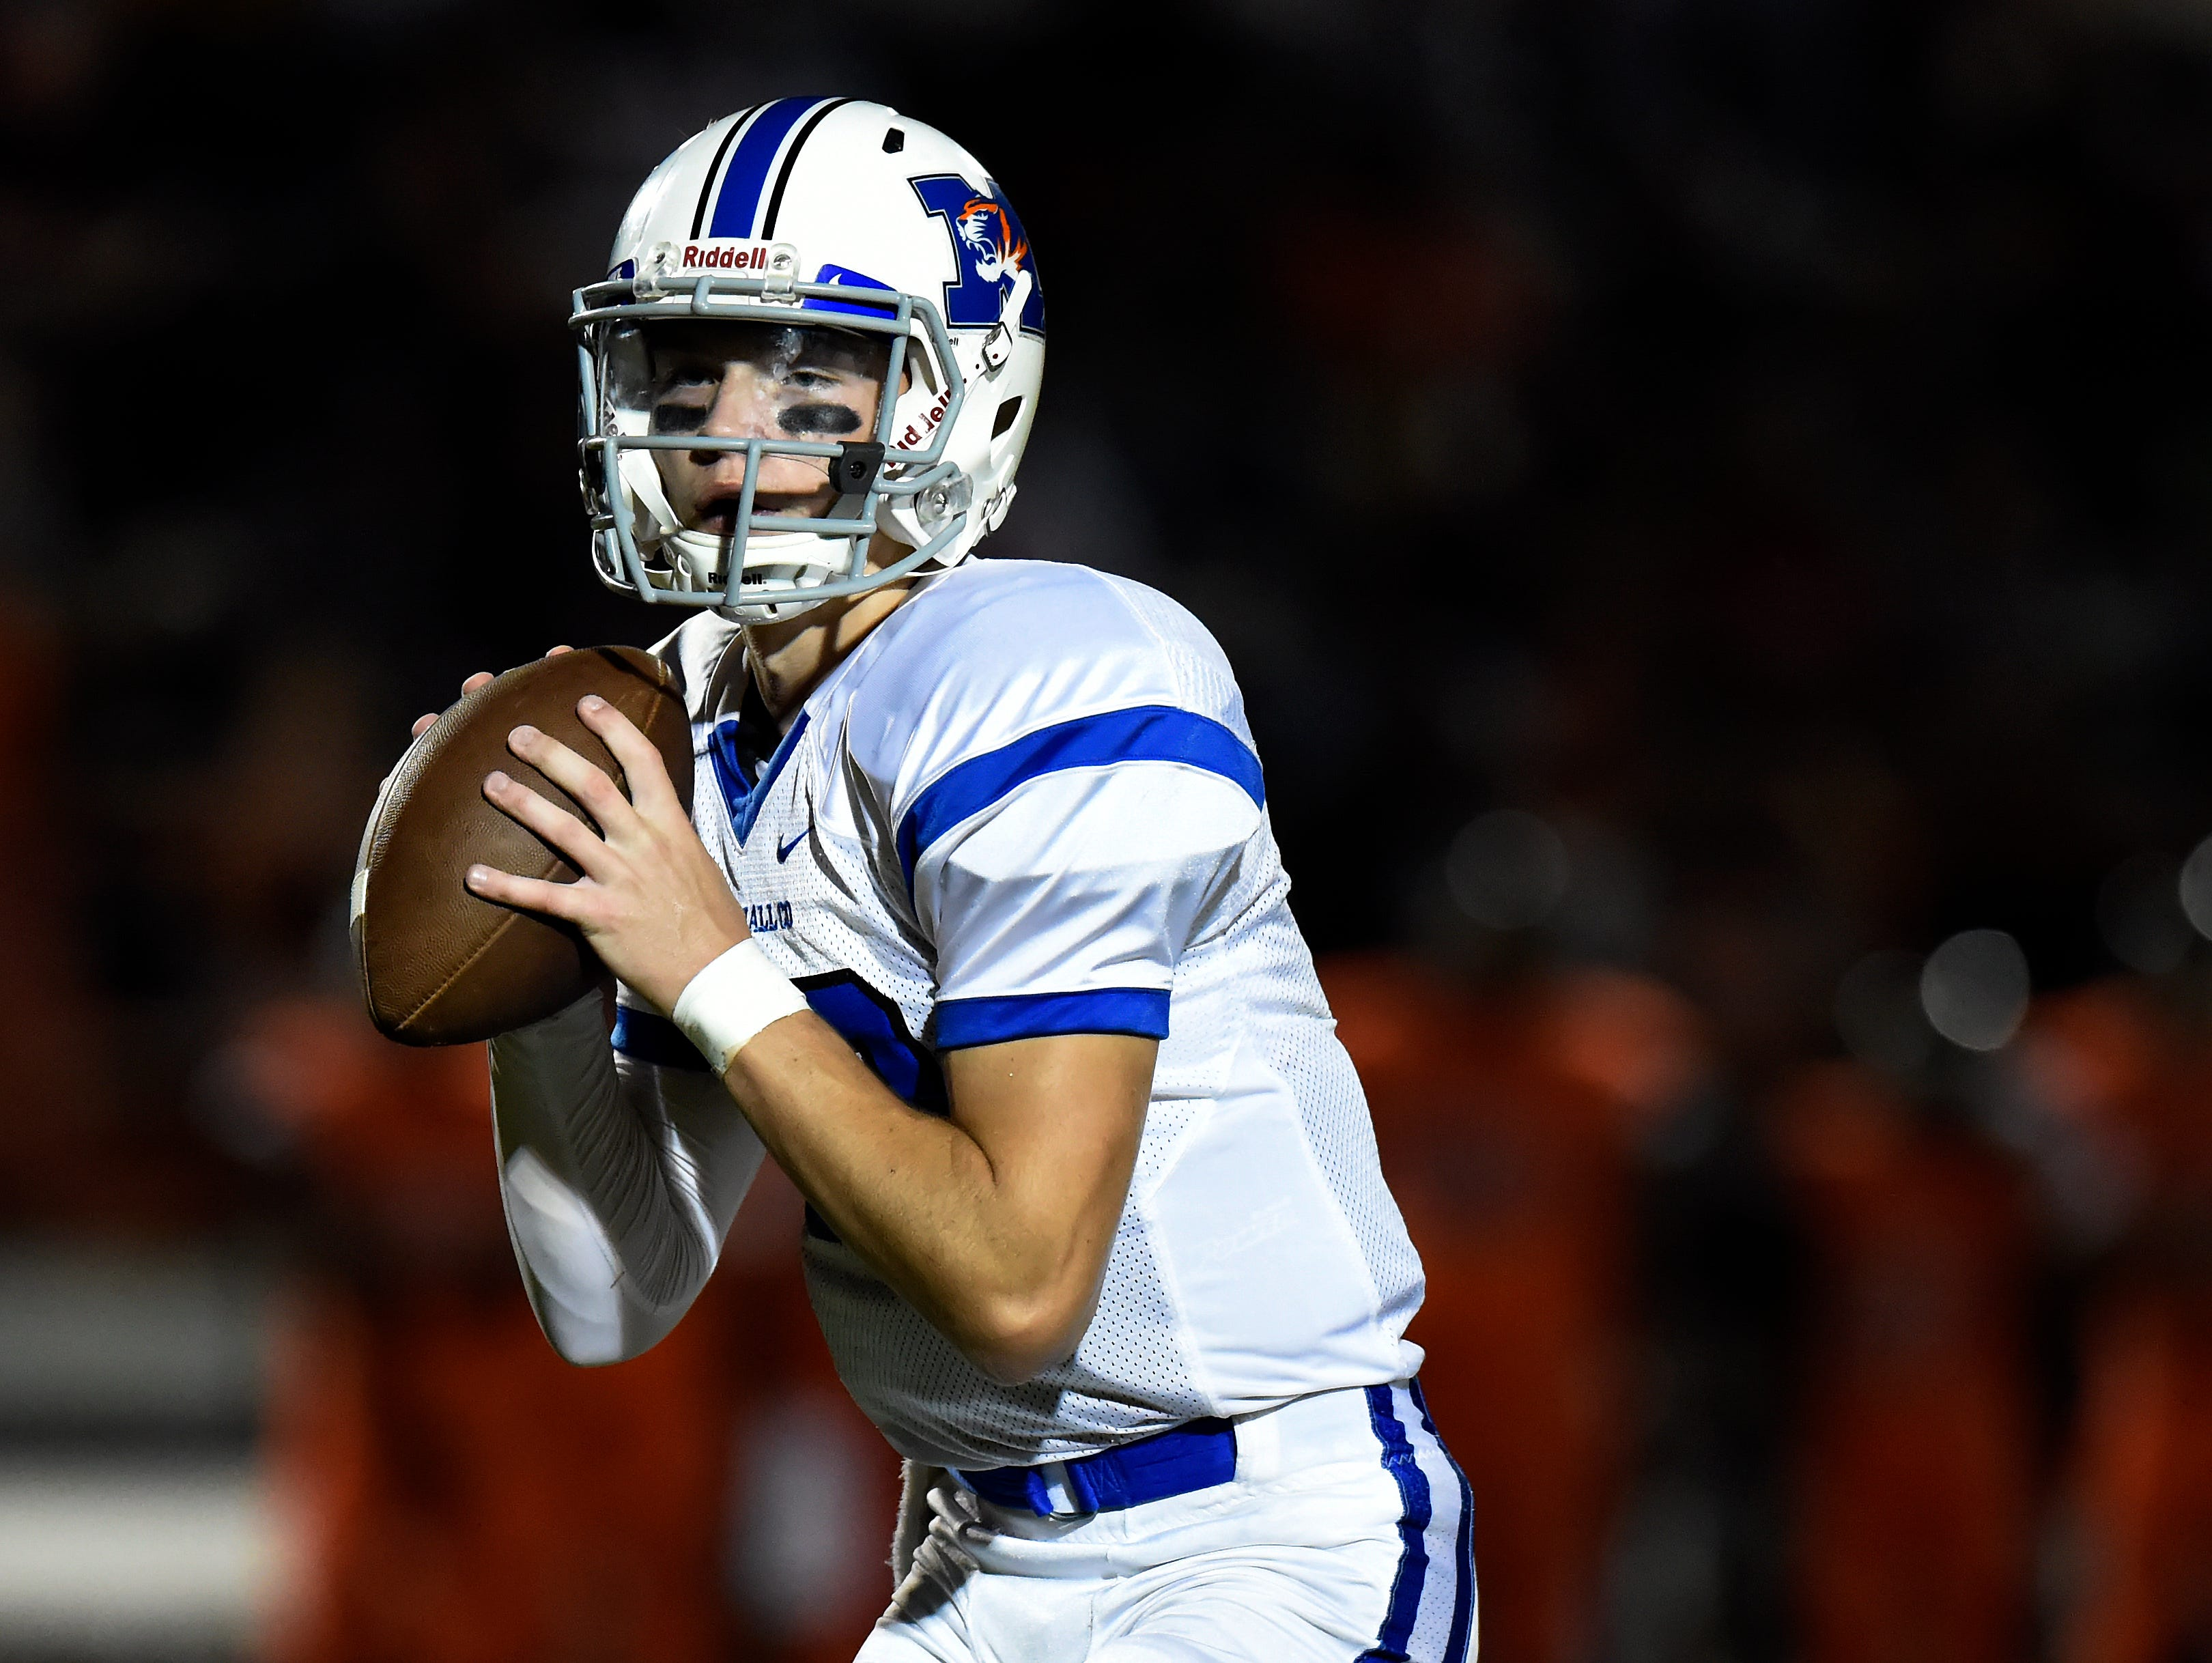 Marshall County quarterback Bryce Wallace drops back to pass during first half of a high school football game against Stratford on Friday, Sept. 23, 2016, in Nashville, Tenn.